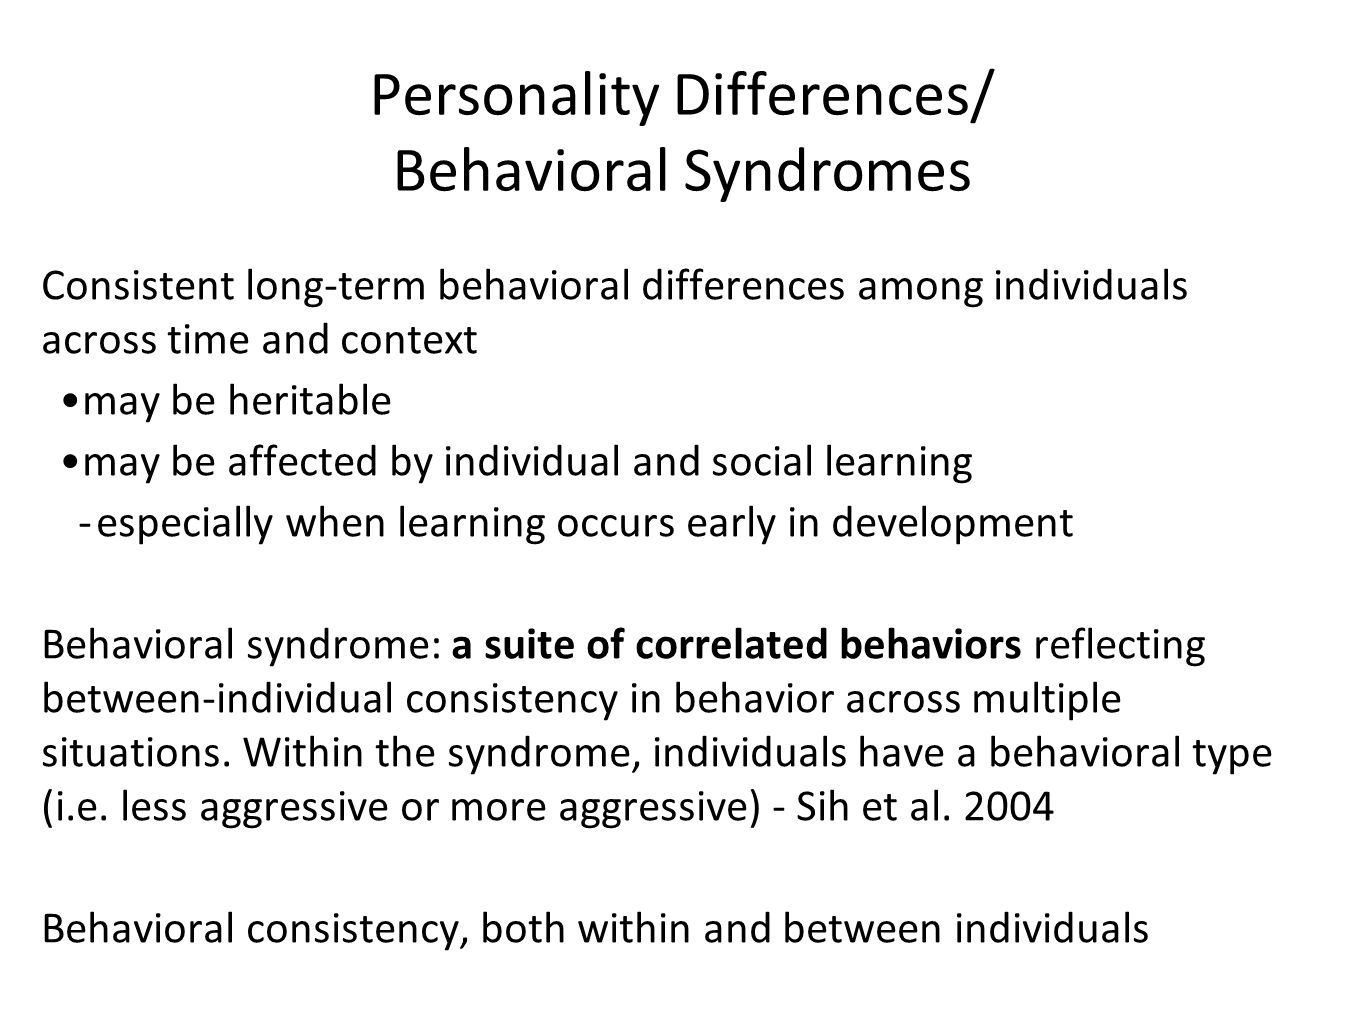 Personality Differences/ Behavioral Syndromes Consistent long-term behavioral differences among individuals across time and context may be heritable may be affected by individual and social learning -especially when learning occurs early in development Behavioral syndrome: a suite of correlated behaviors reflecting between-individual consistency in behavior across multiple situations.